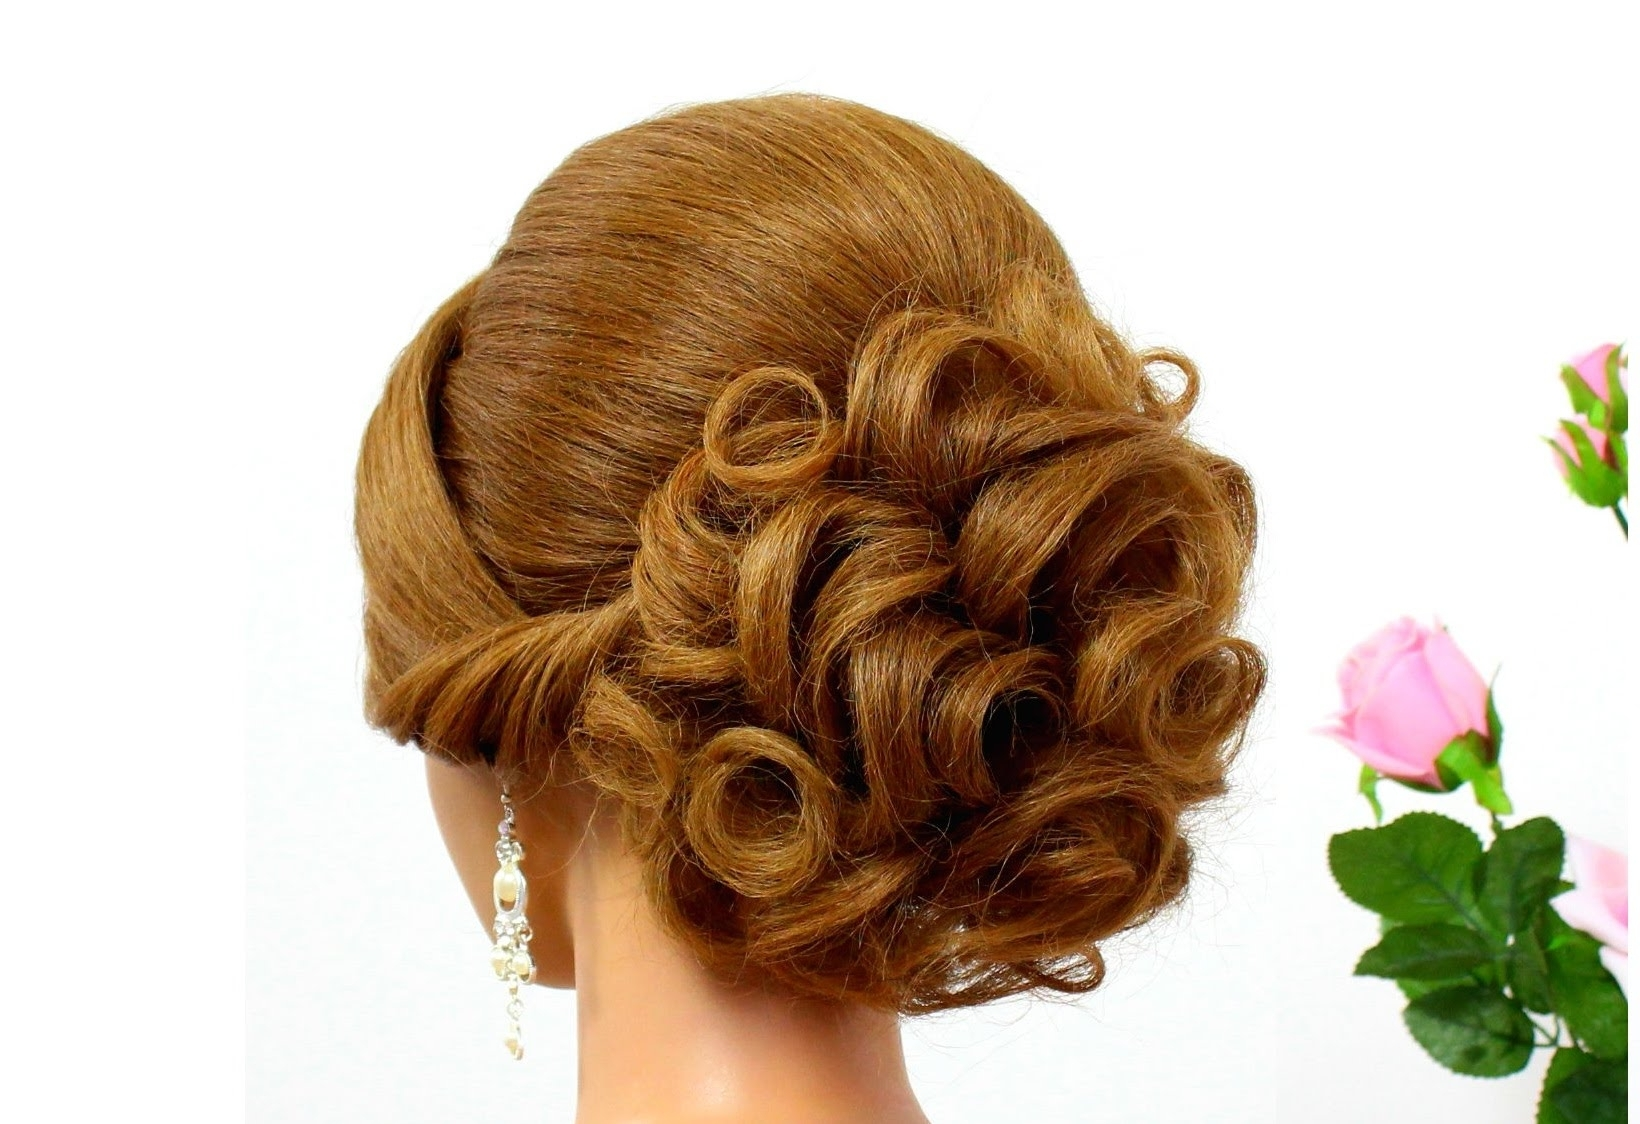 Bridal Hairstyle For Long Hair Tutorial (View 5 of 15)